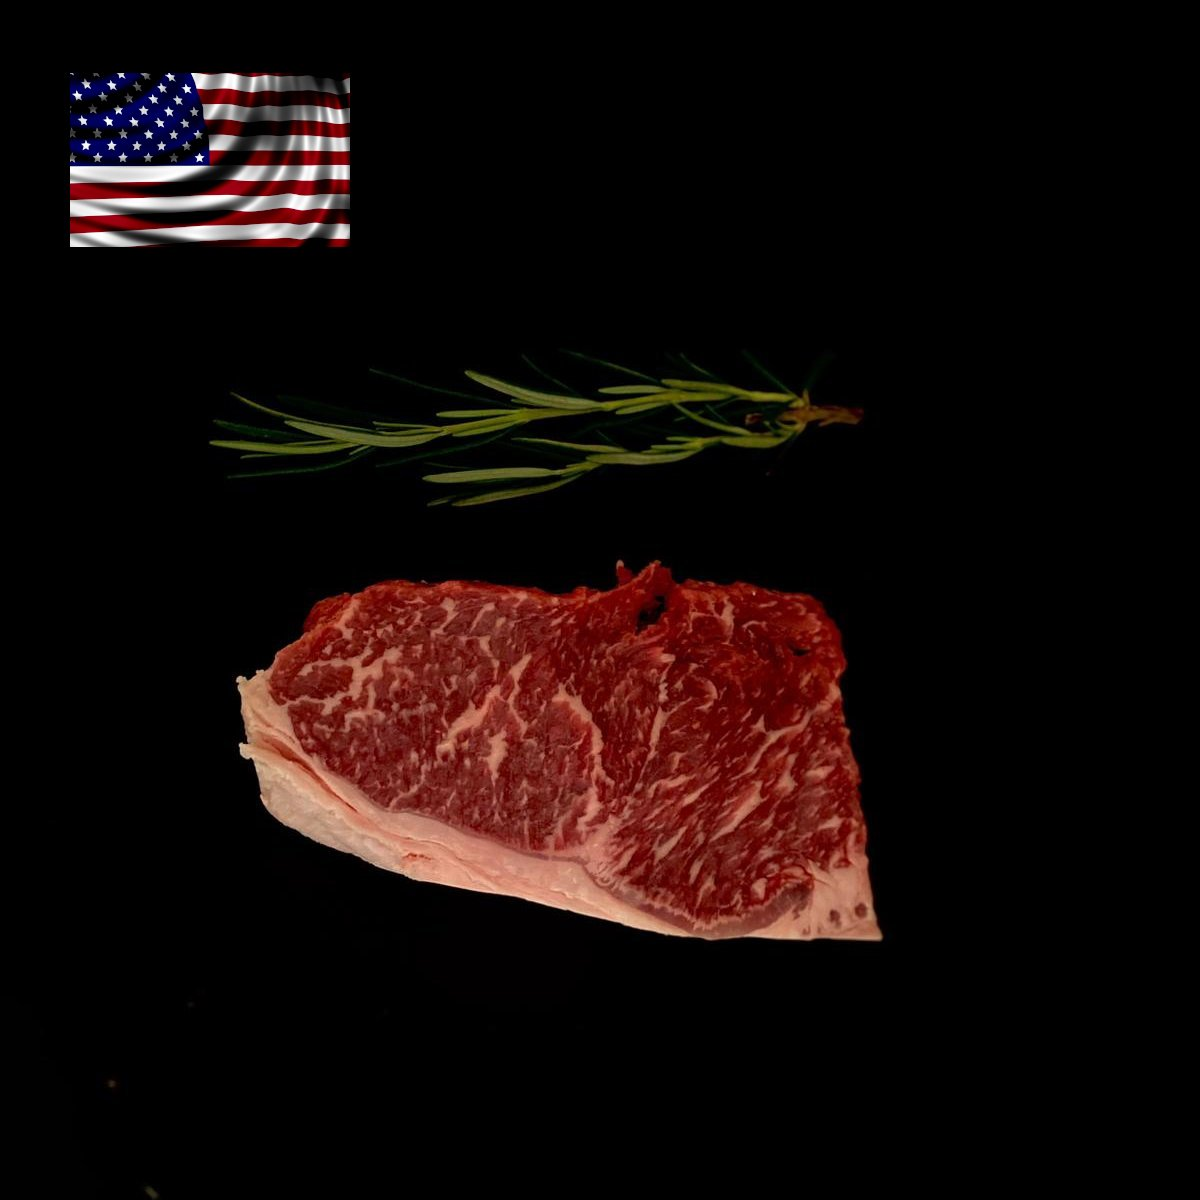 Black Angus Roastbeef - Creekstone Farms - USA